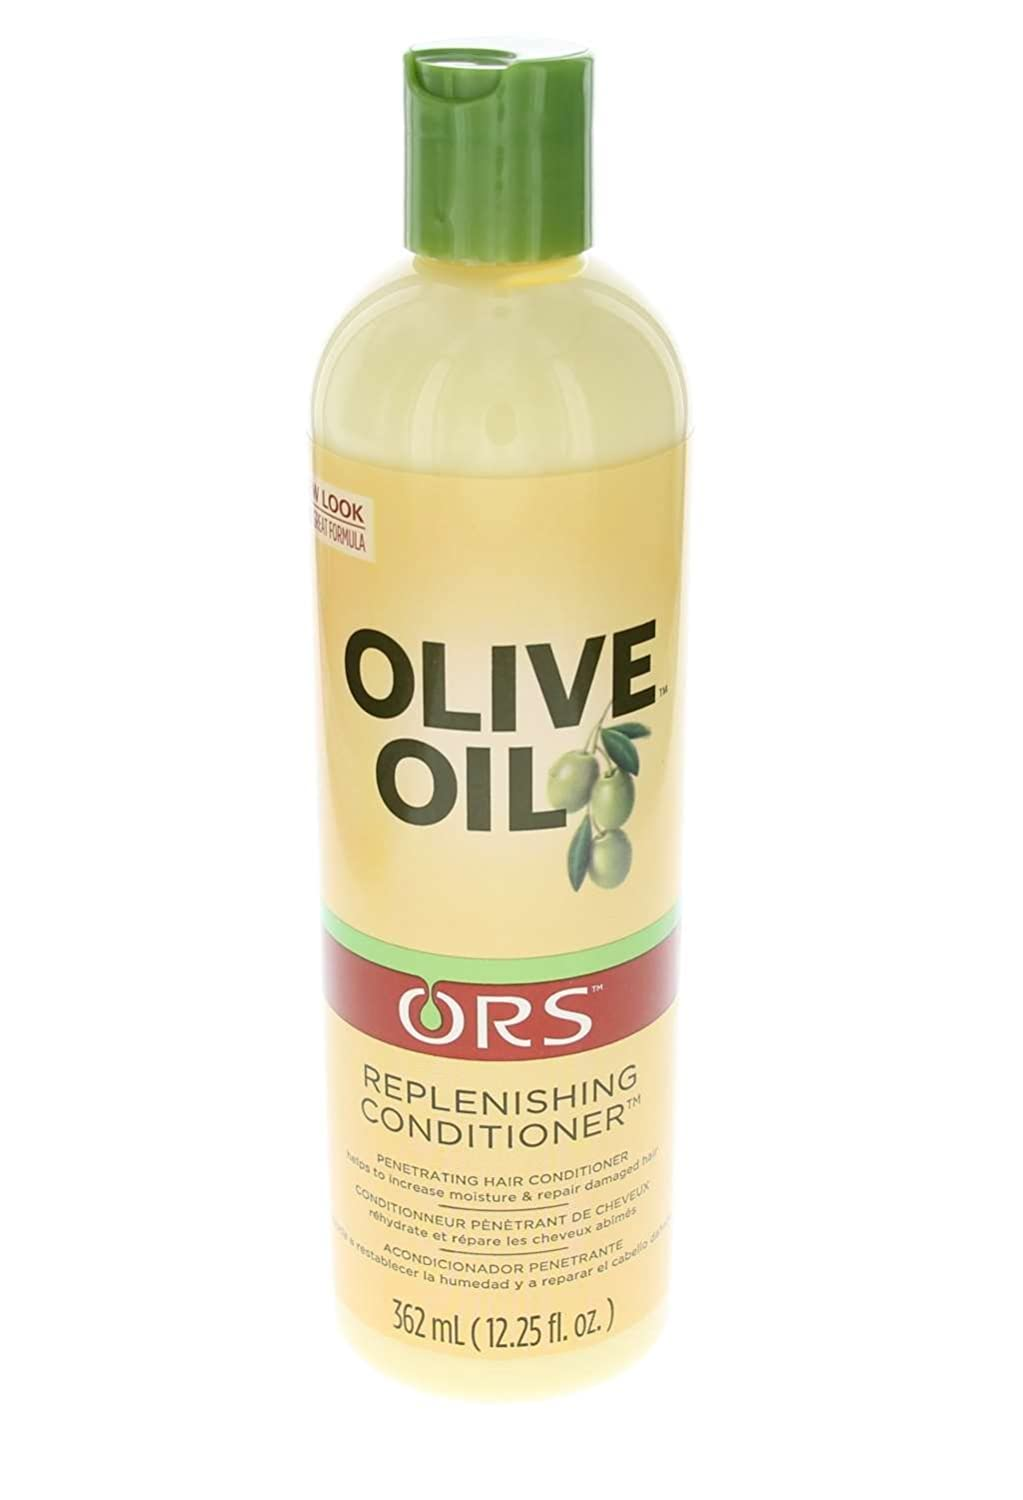 Ors Olive Oil Replenishing Conditioner 12.25oz (2 Pack) by Organic Root (ORS) Unknown